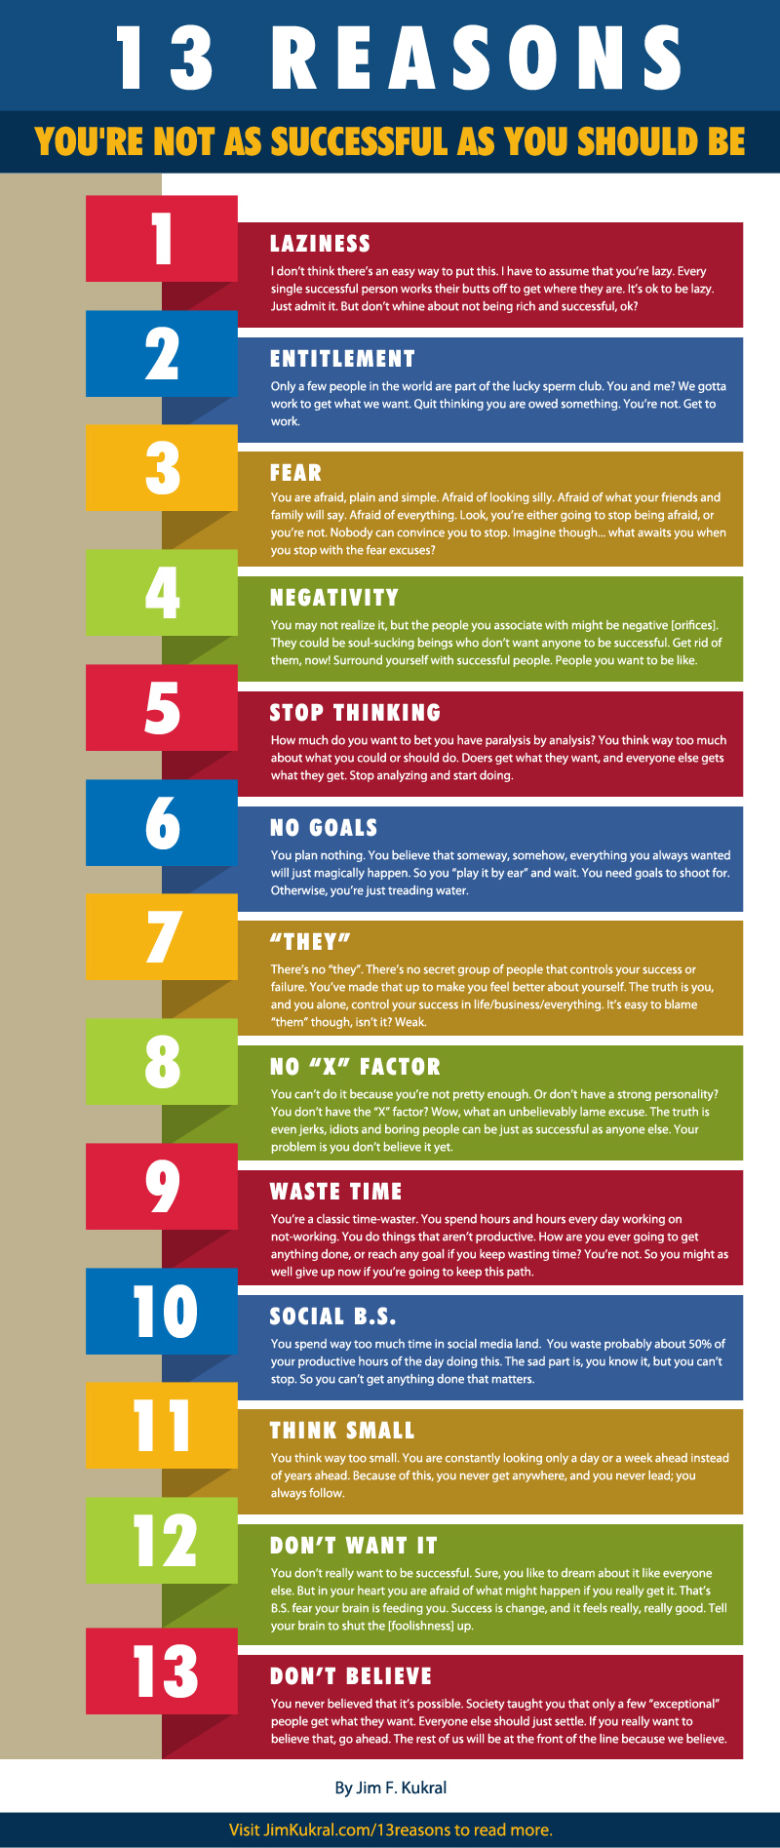 13 Reasons Your are not successfull as you should be